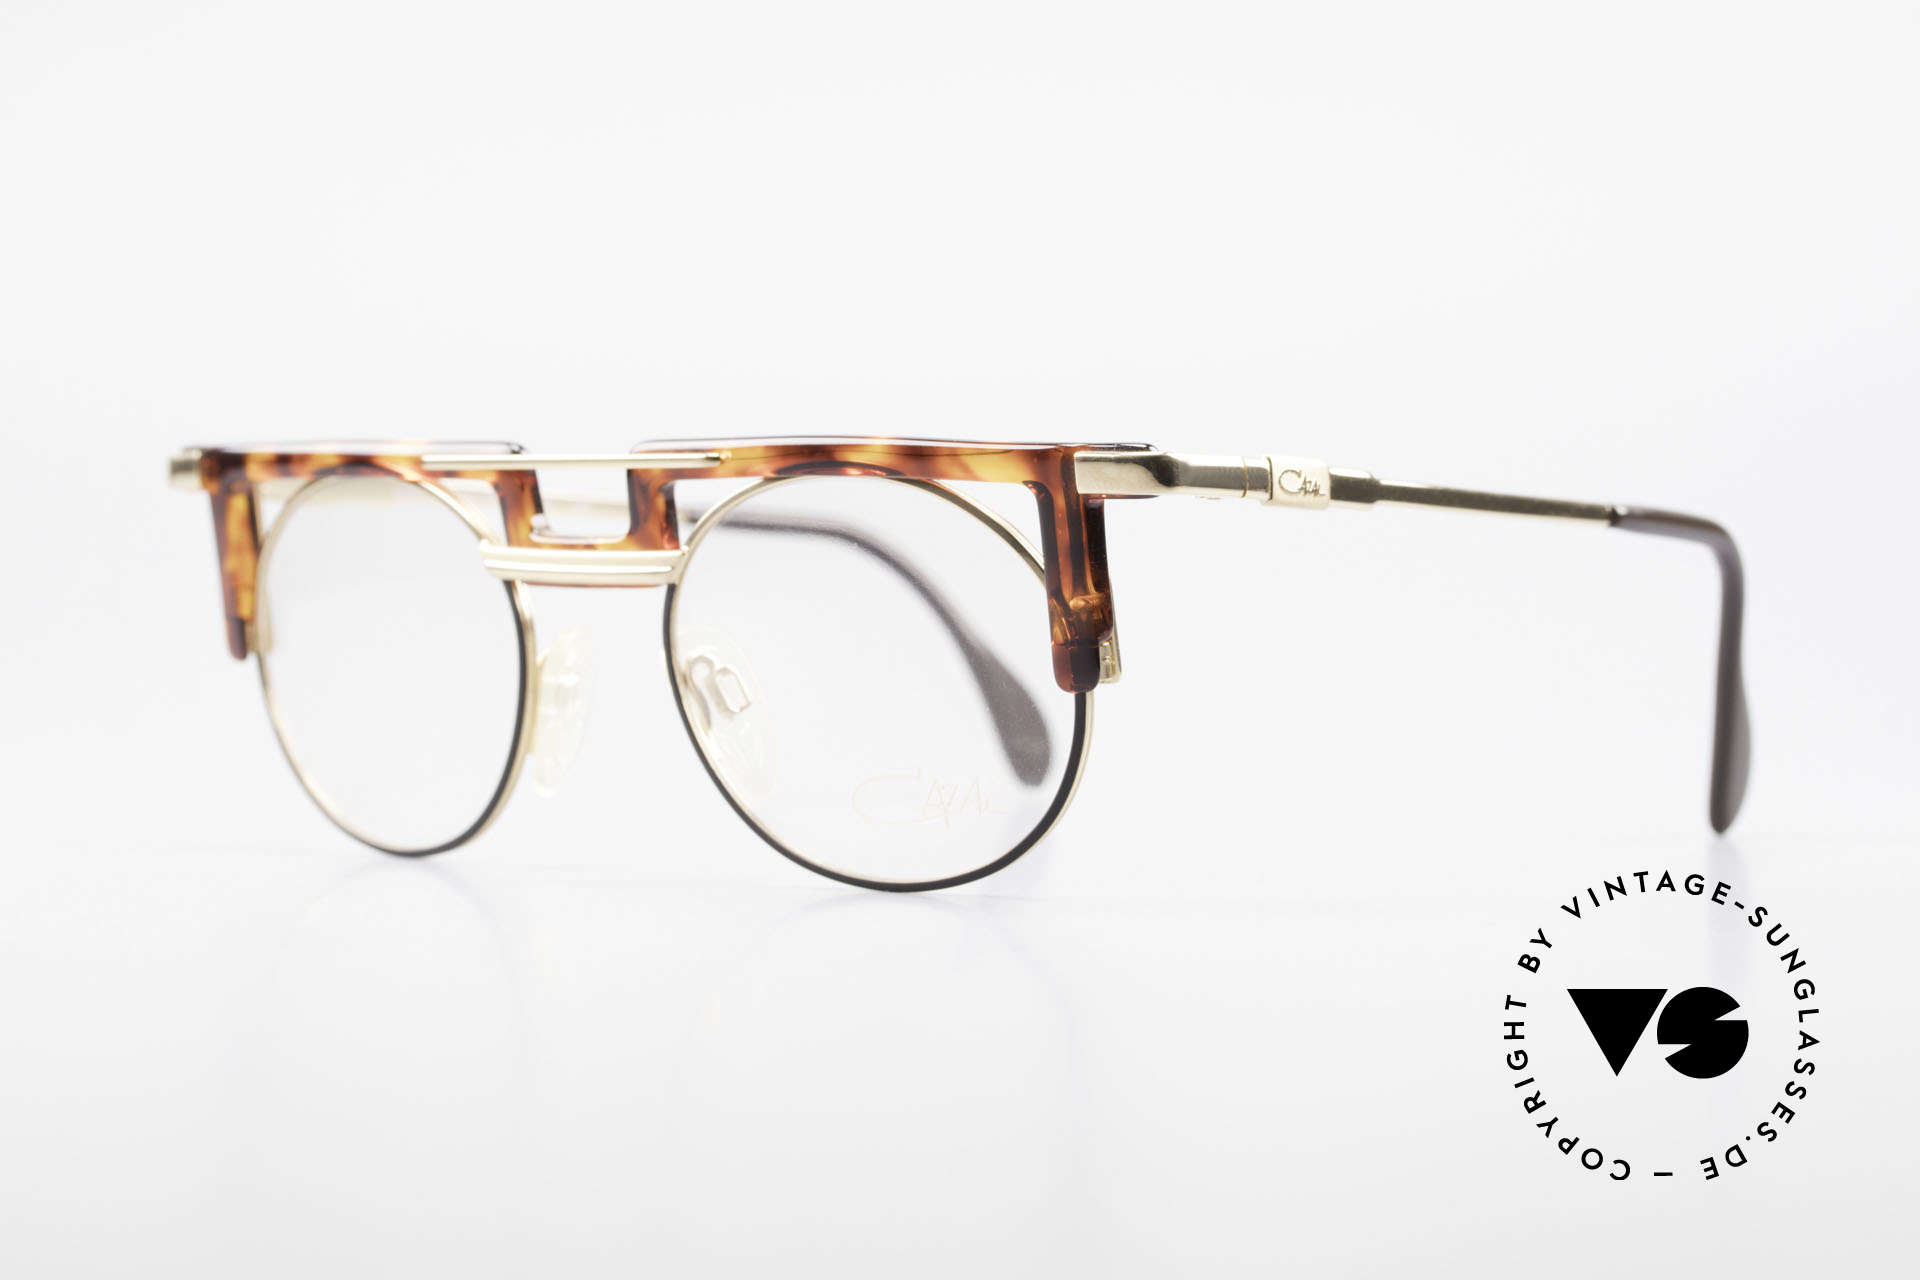 Cazal 745 Old Cazal 90's Eyeglass-Frame, eye-catching frame (just distinctive CAri ZALloni), Made for Men and Women